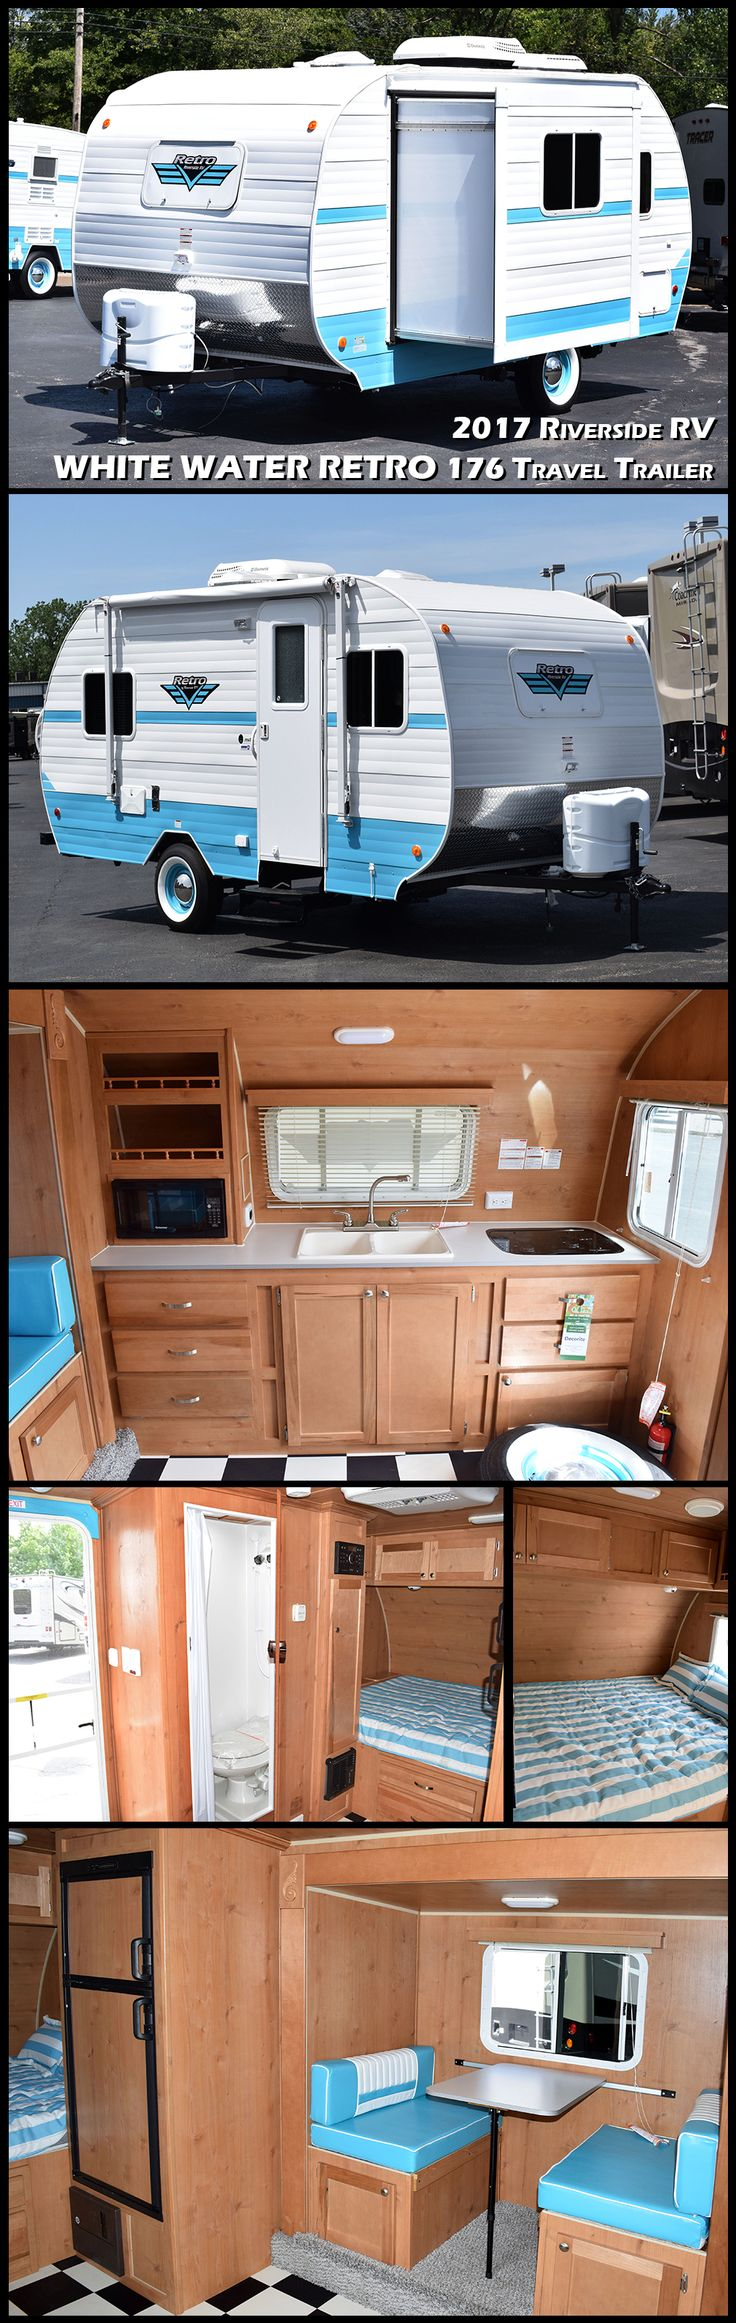 2017 retro 176s by riverside rv sleek lines and curves colors that punch and